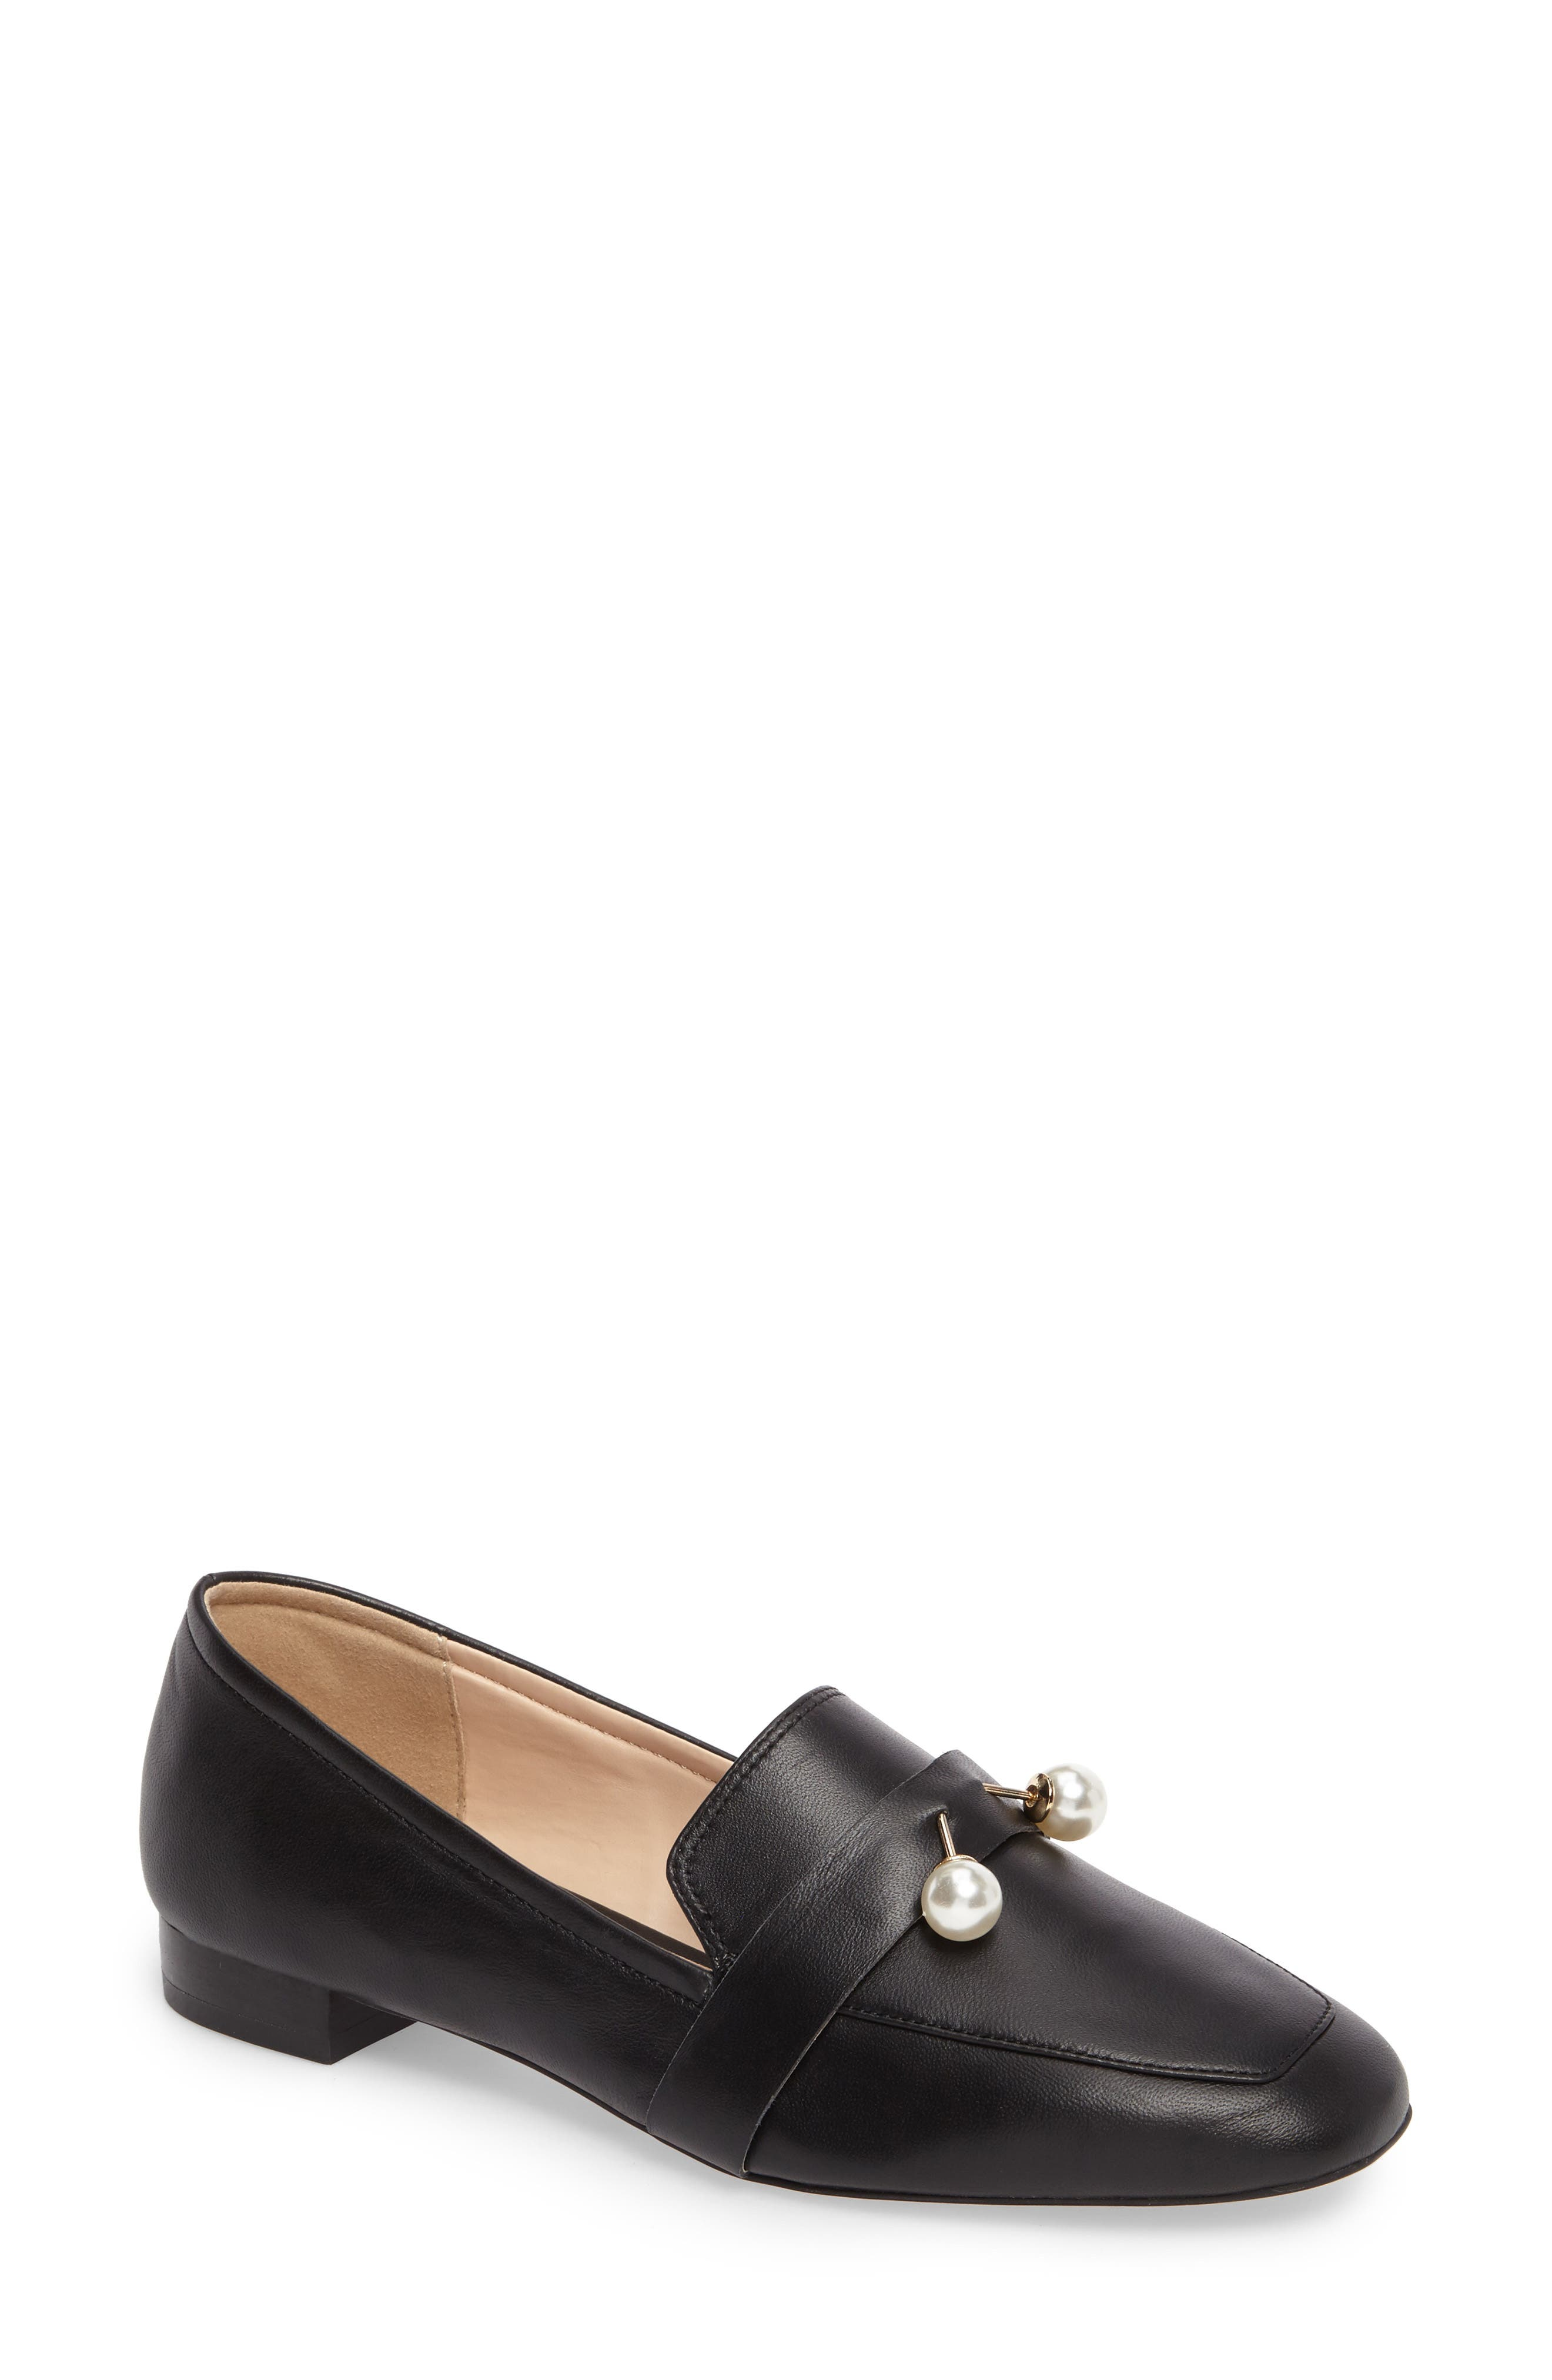 Caspar Loafer,                             Main thumbnail 1, color,